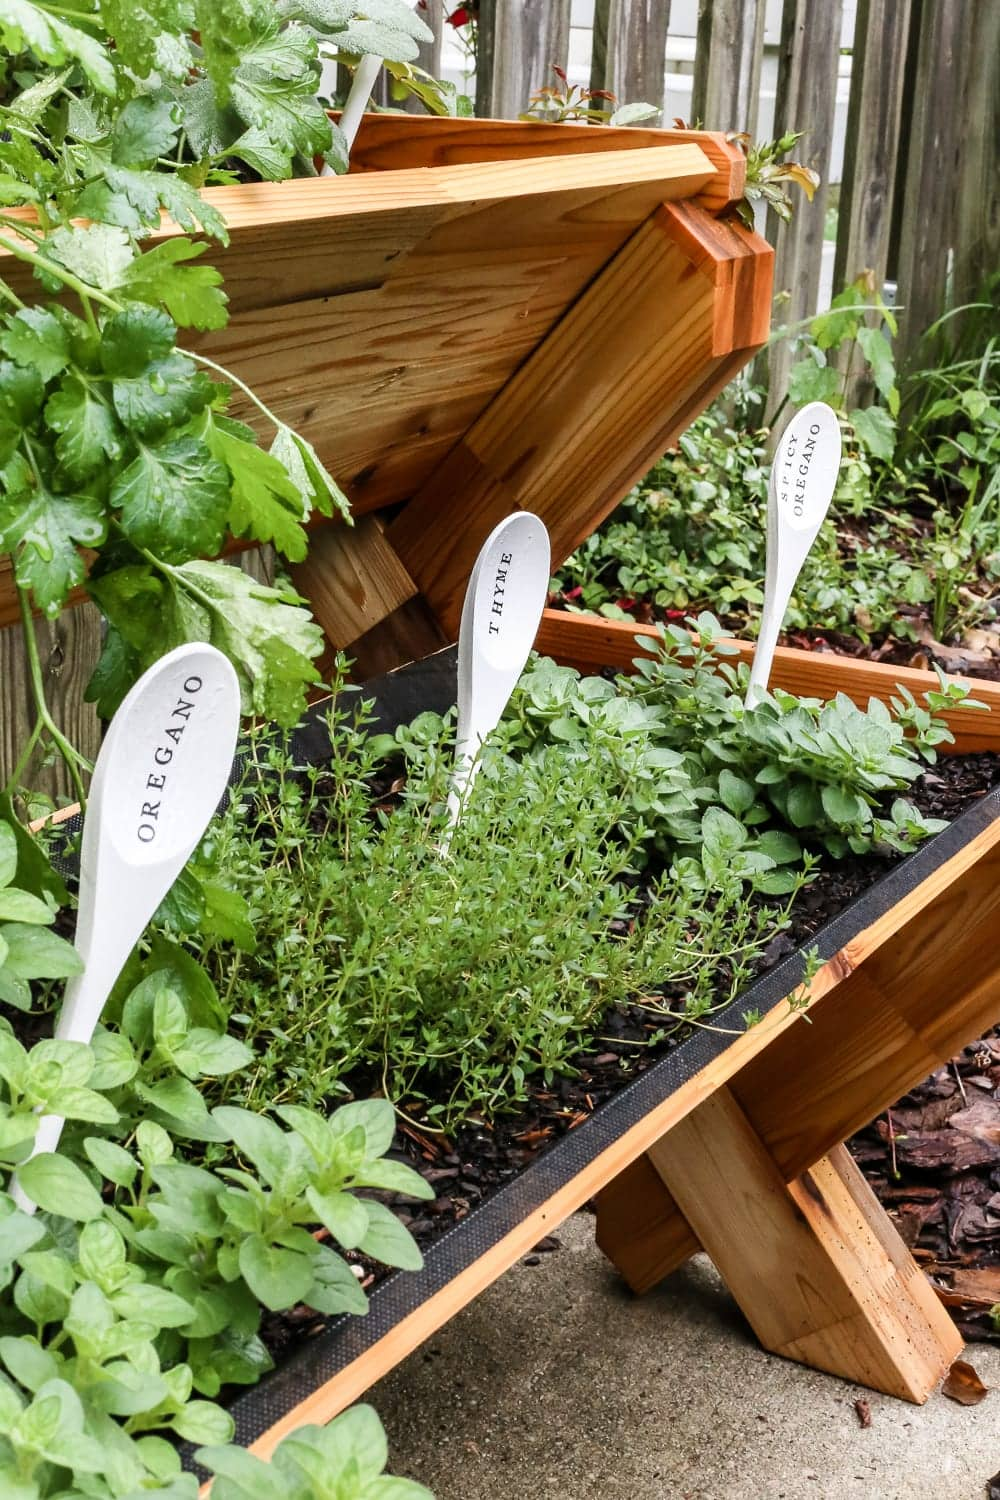 DIY Wooden Spoon Garden Markers | blesserhouse.com - A simple tutorial for how to craft your own vintage-inspired garden markers made from wooden spoons, plus a resource for a beautiful stacked herb garden.